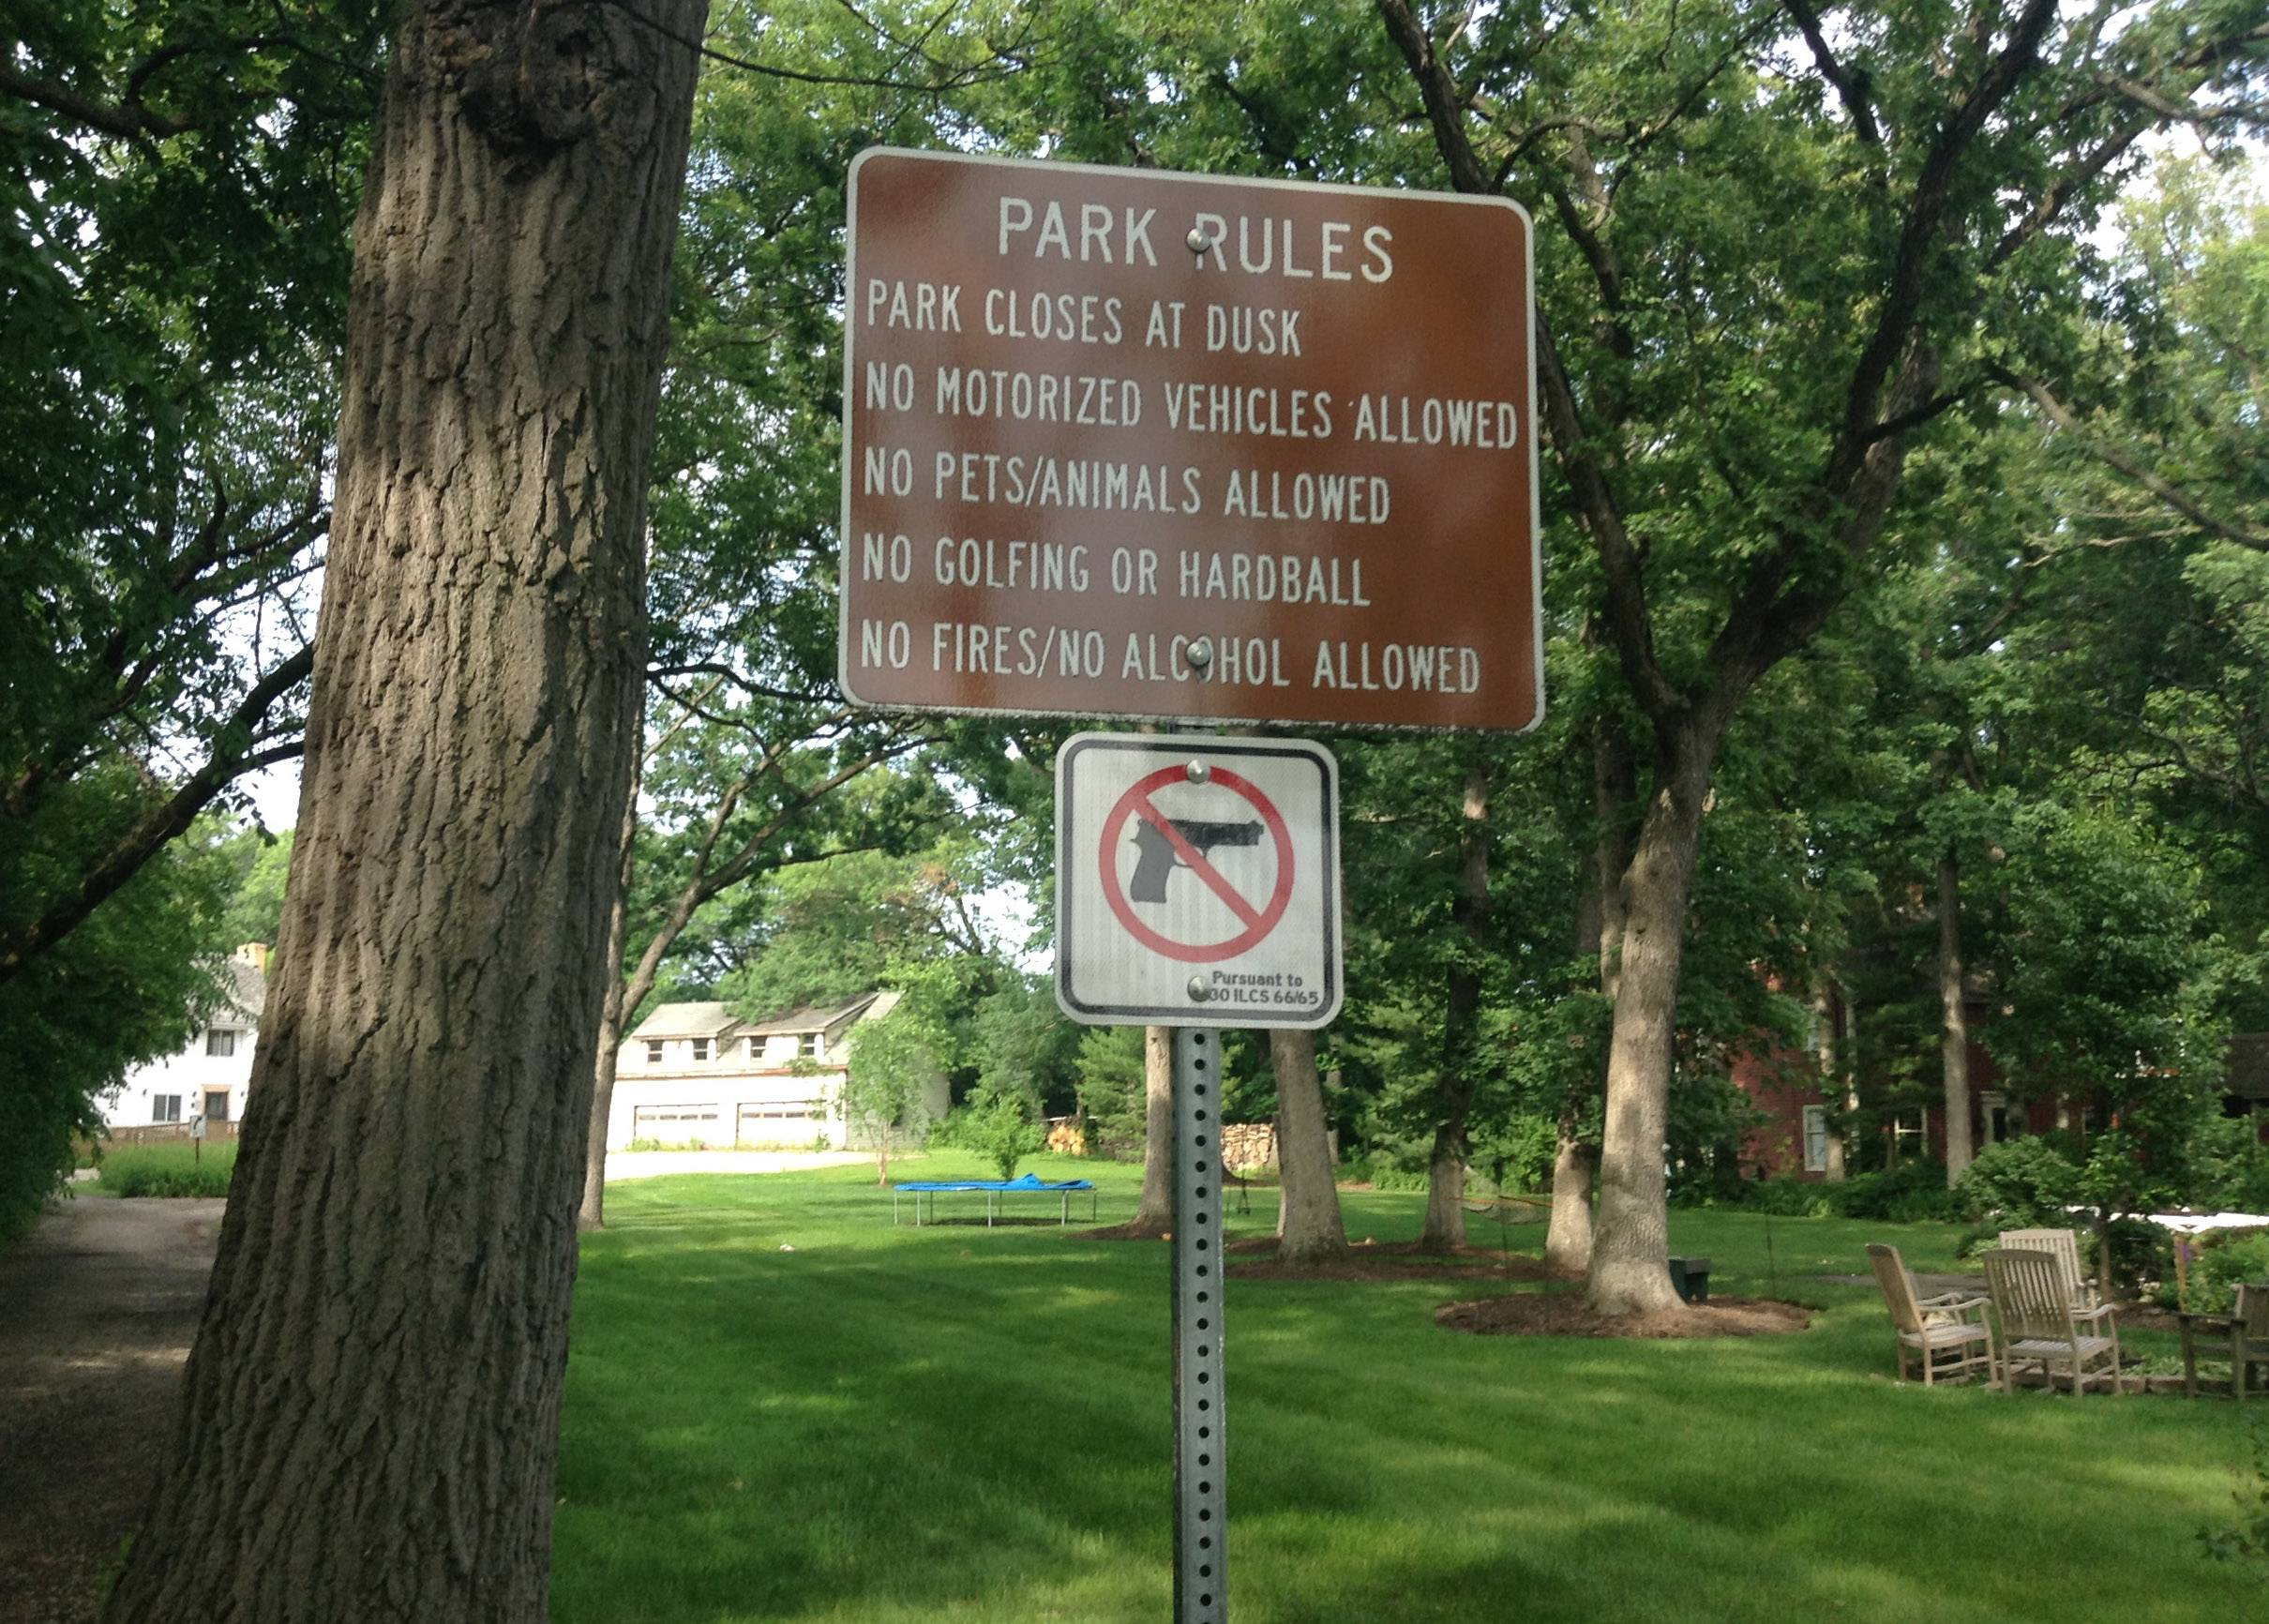 A sign in Kuechmann Park in Lake Zurich notes the rules of the park.